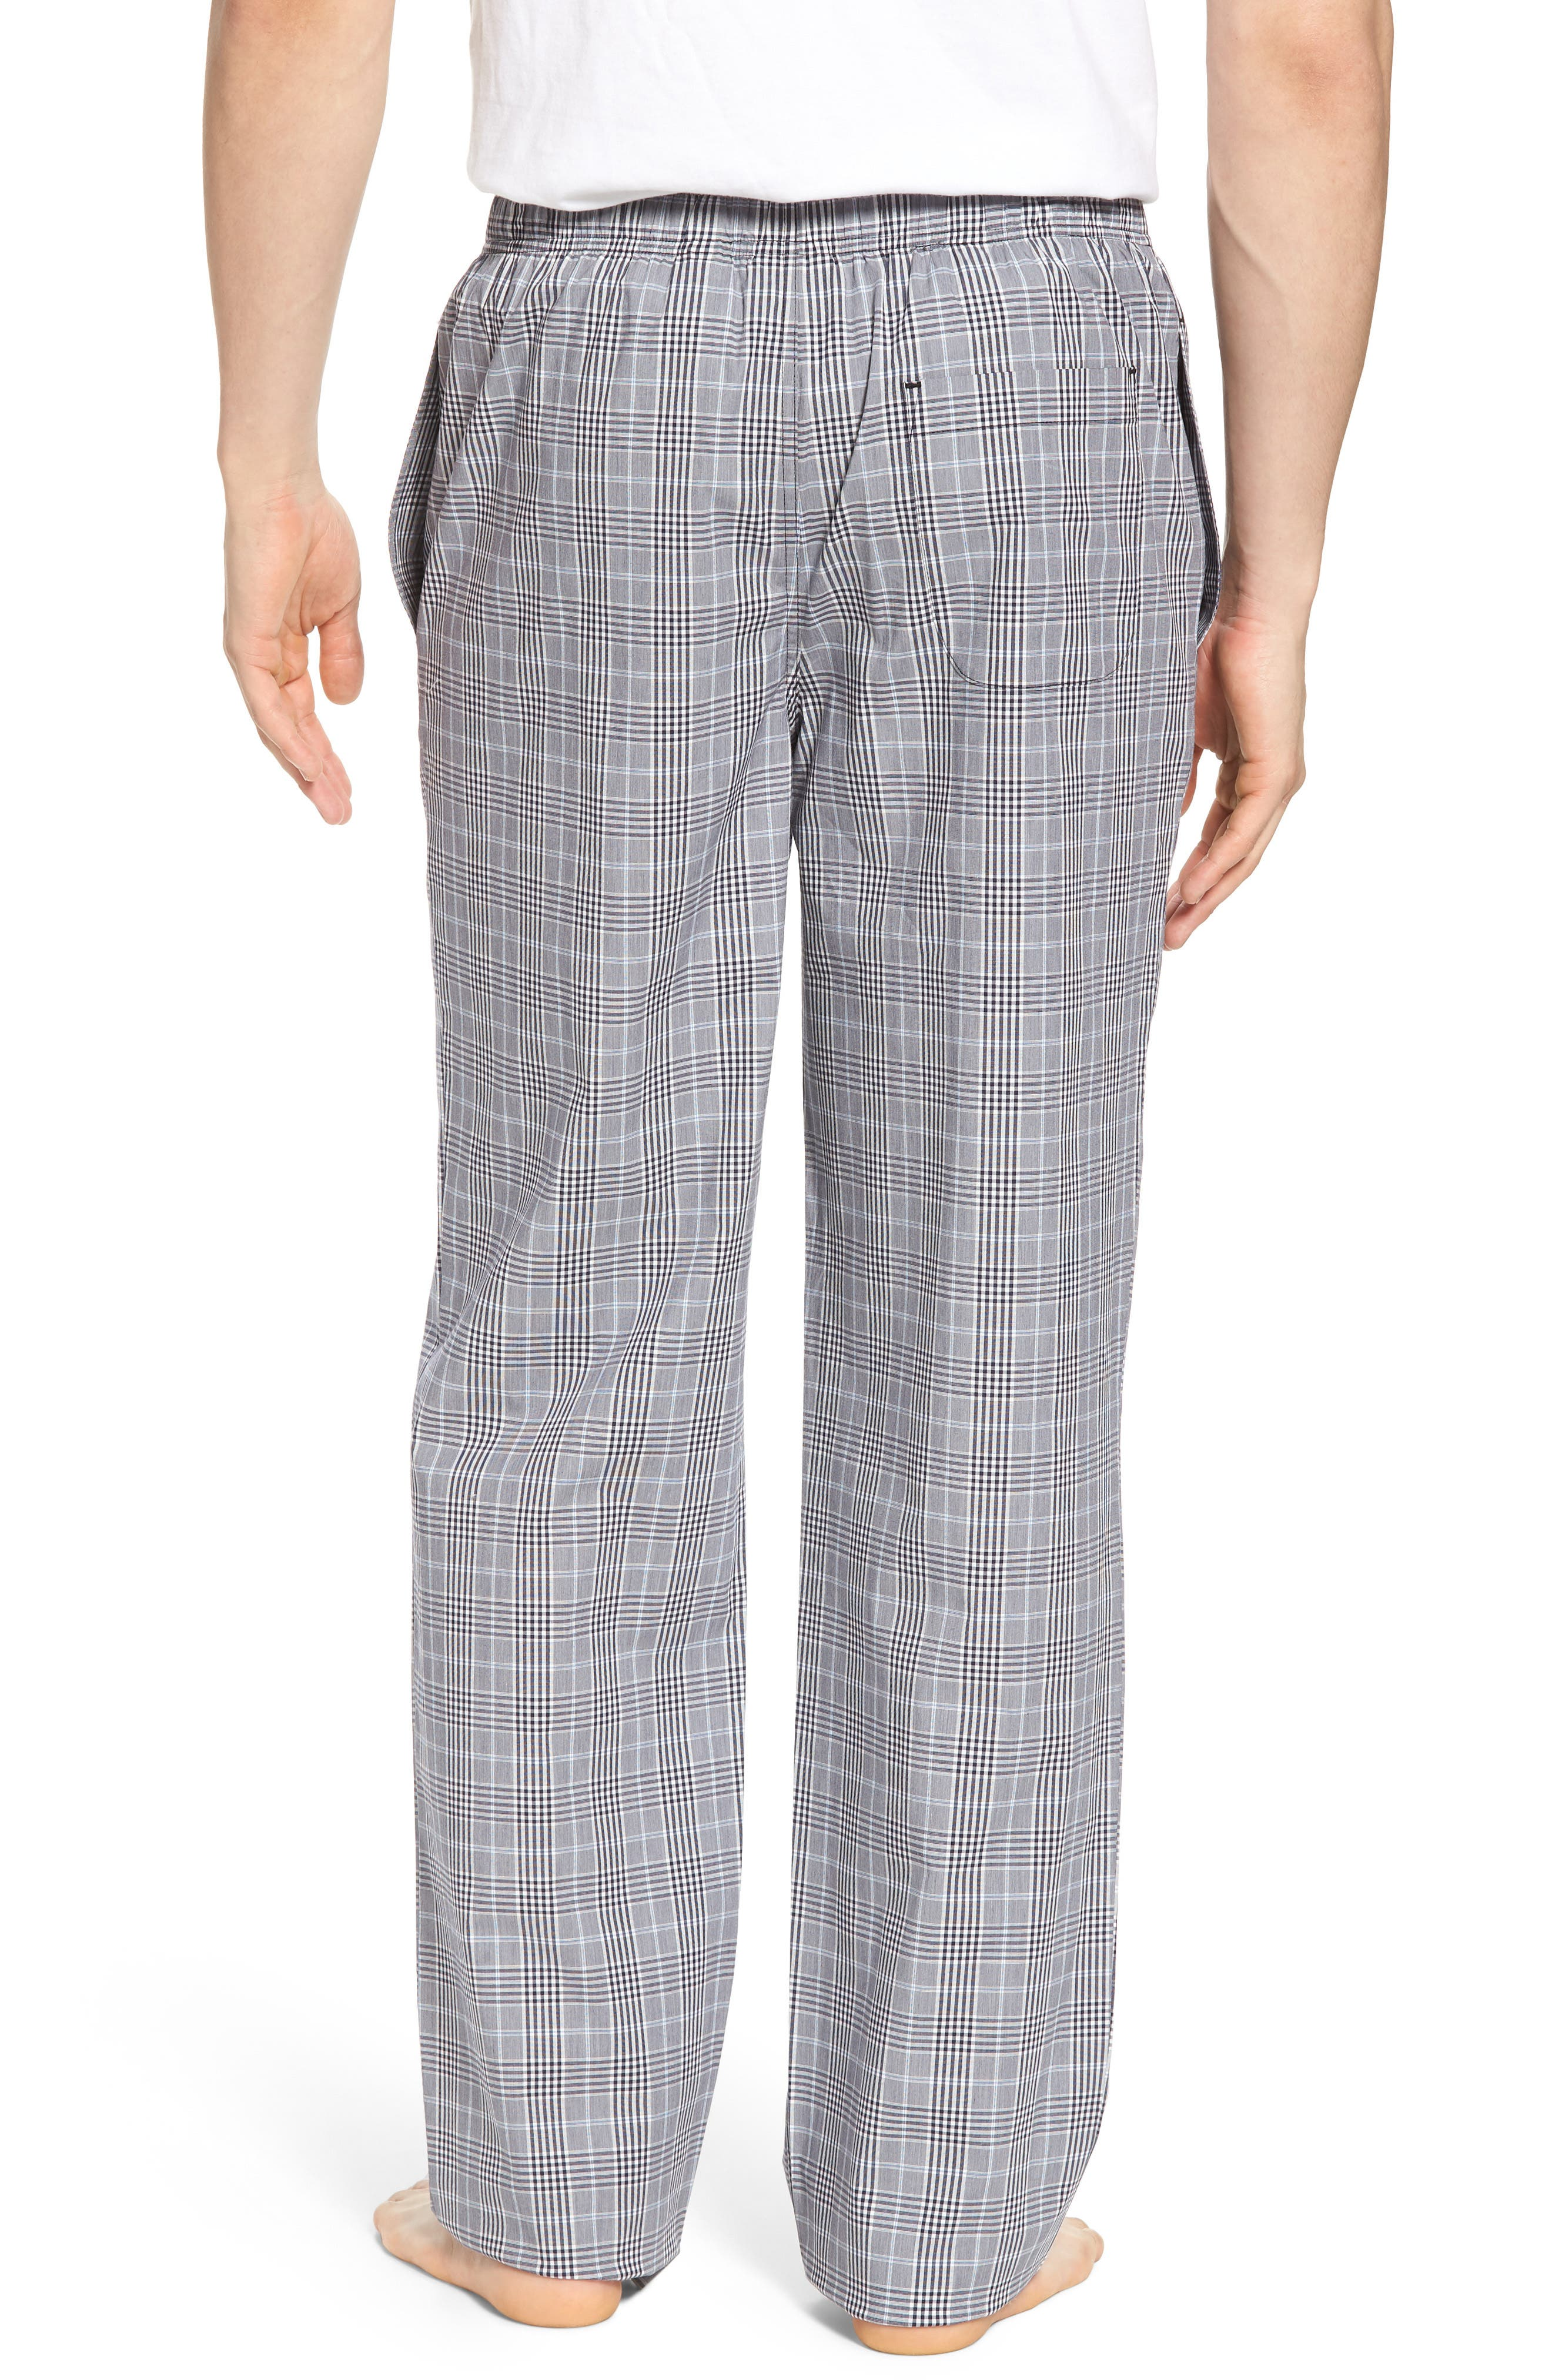 Charleston Lounge Pants,                             Alternate thumbnail 2, color,                             BLACK PLAID